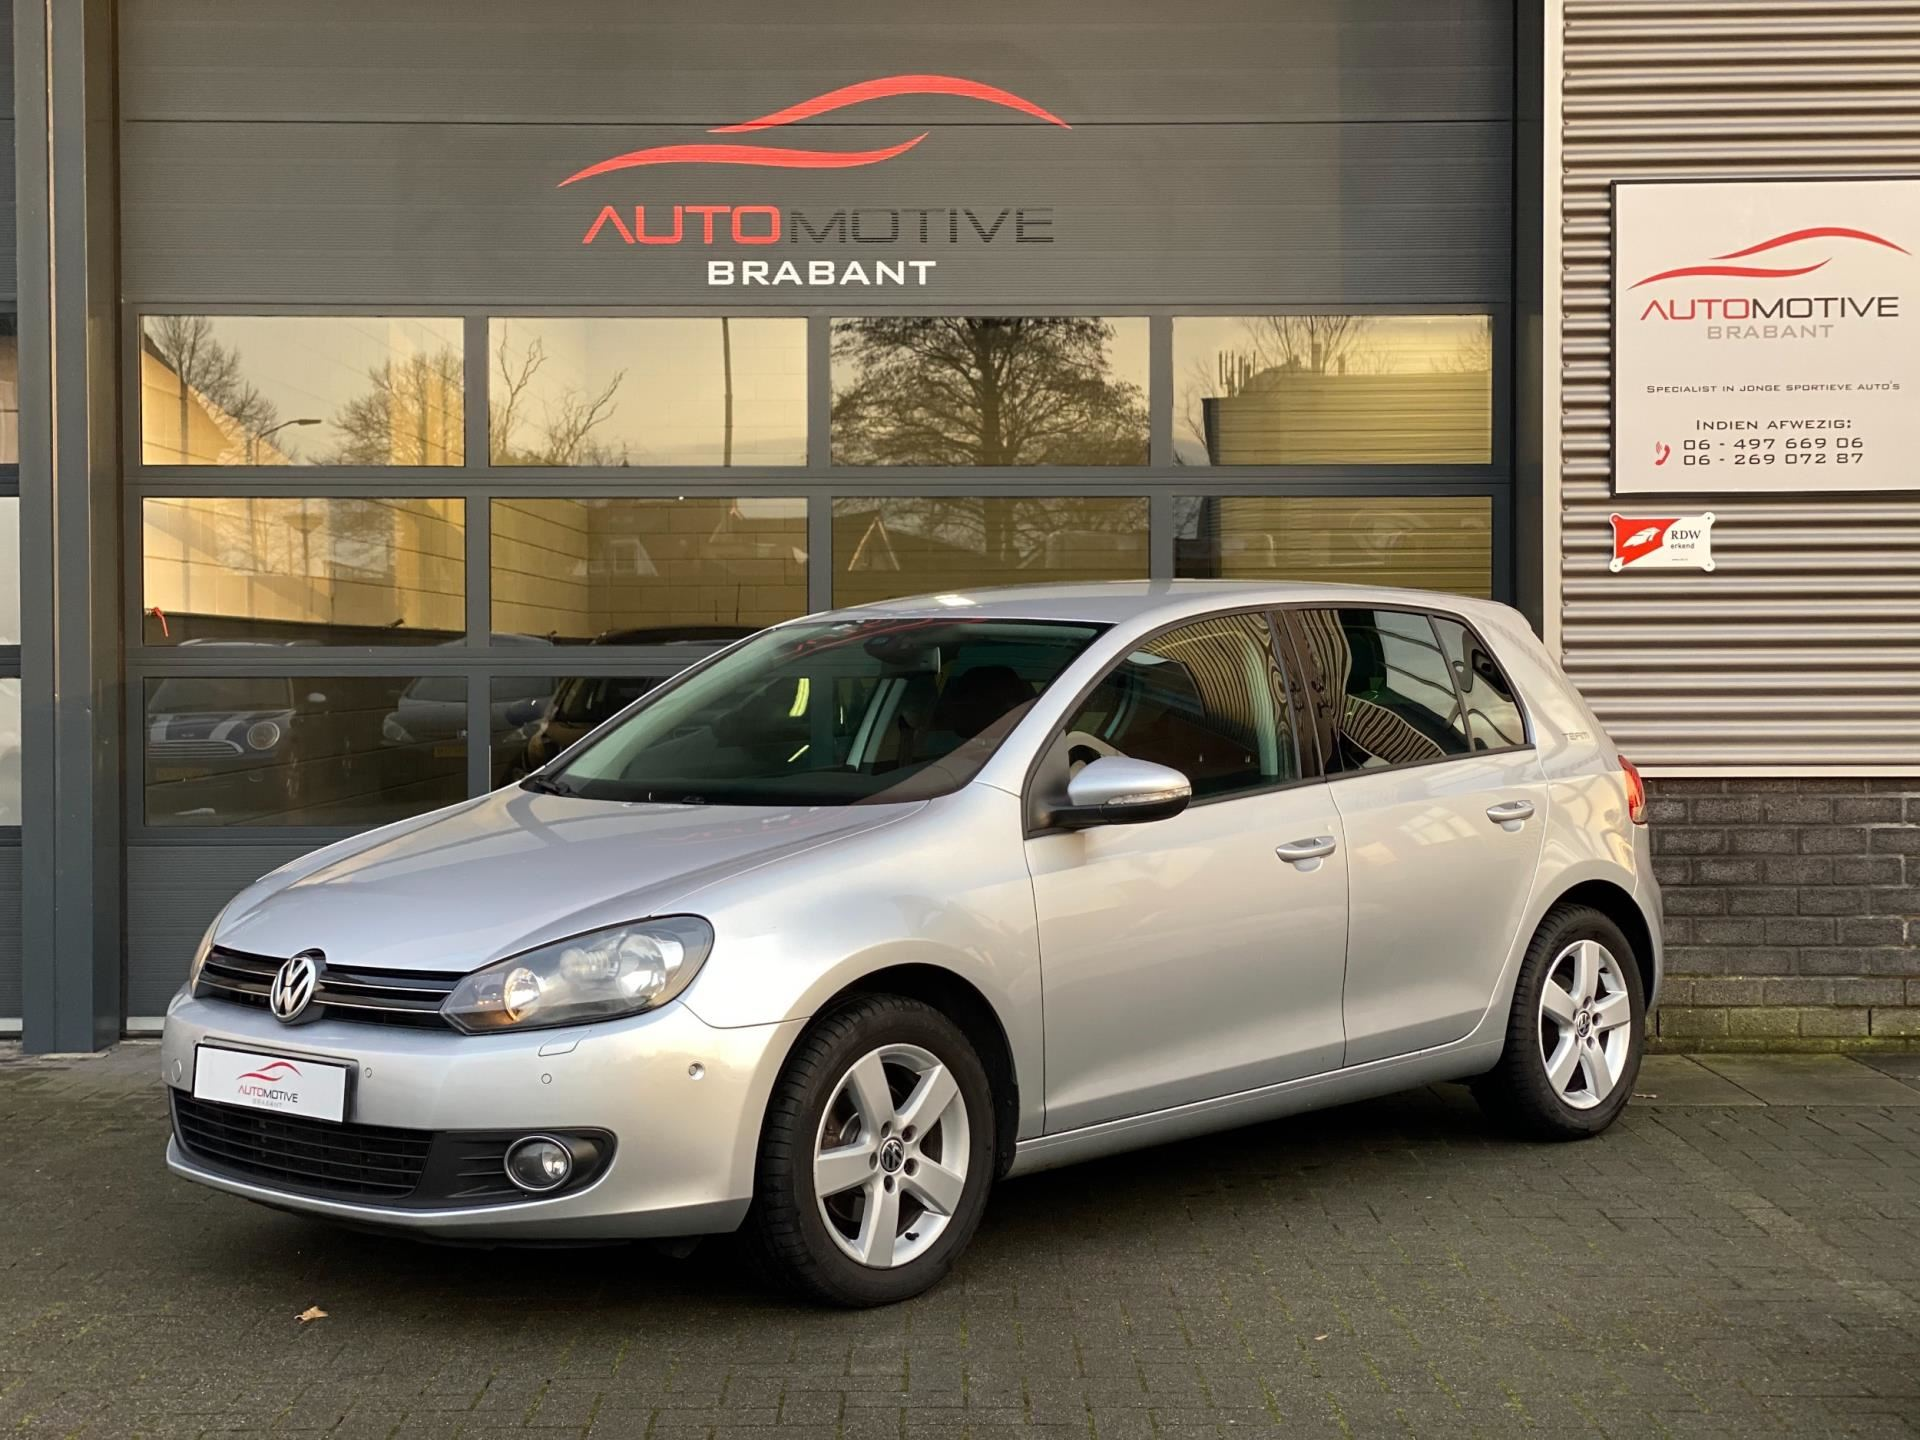 Volkswagen Golf occasion - Automotive Brabant